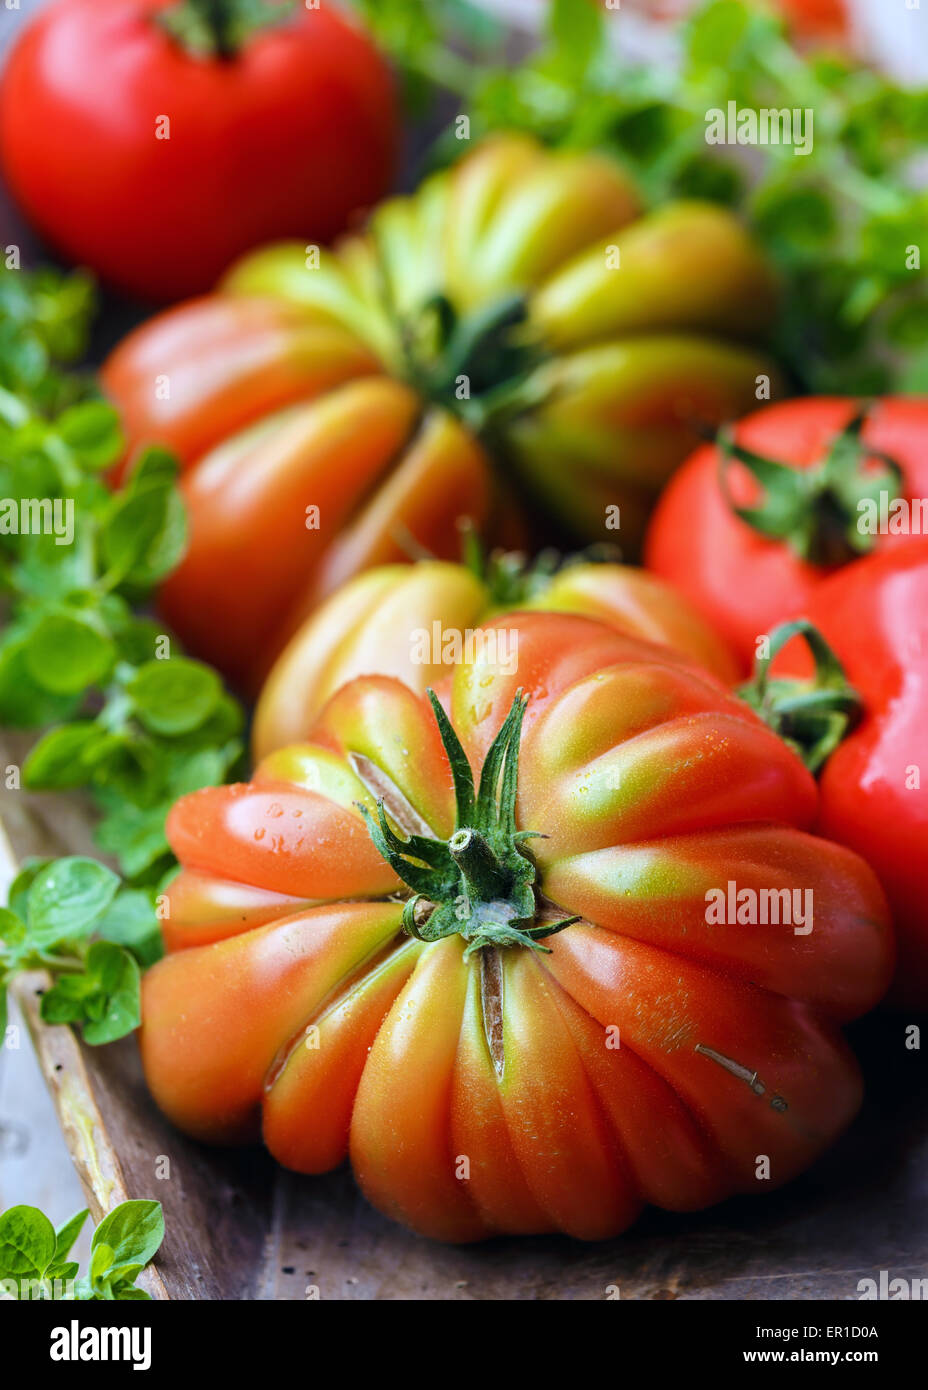 Tomatoes variety 'Cuore di Bue' - Stock Image